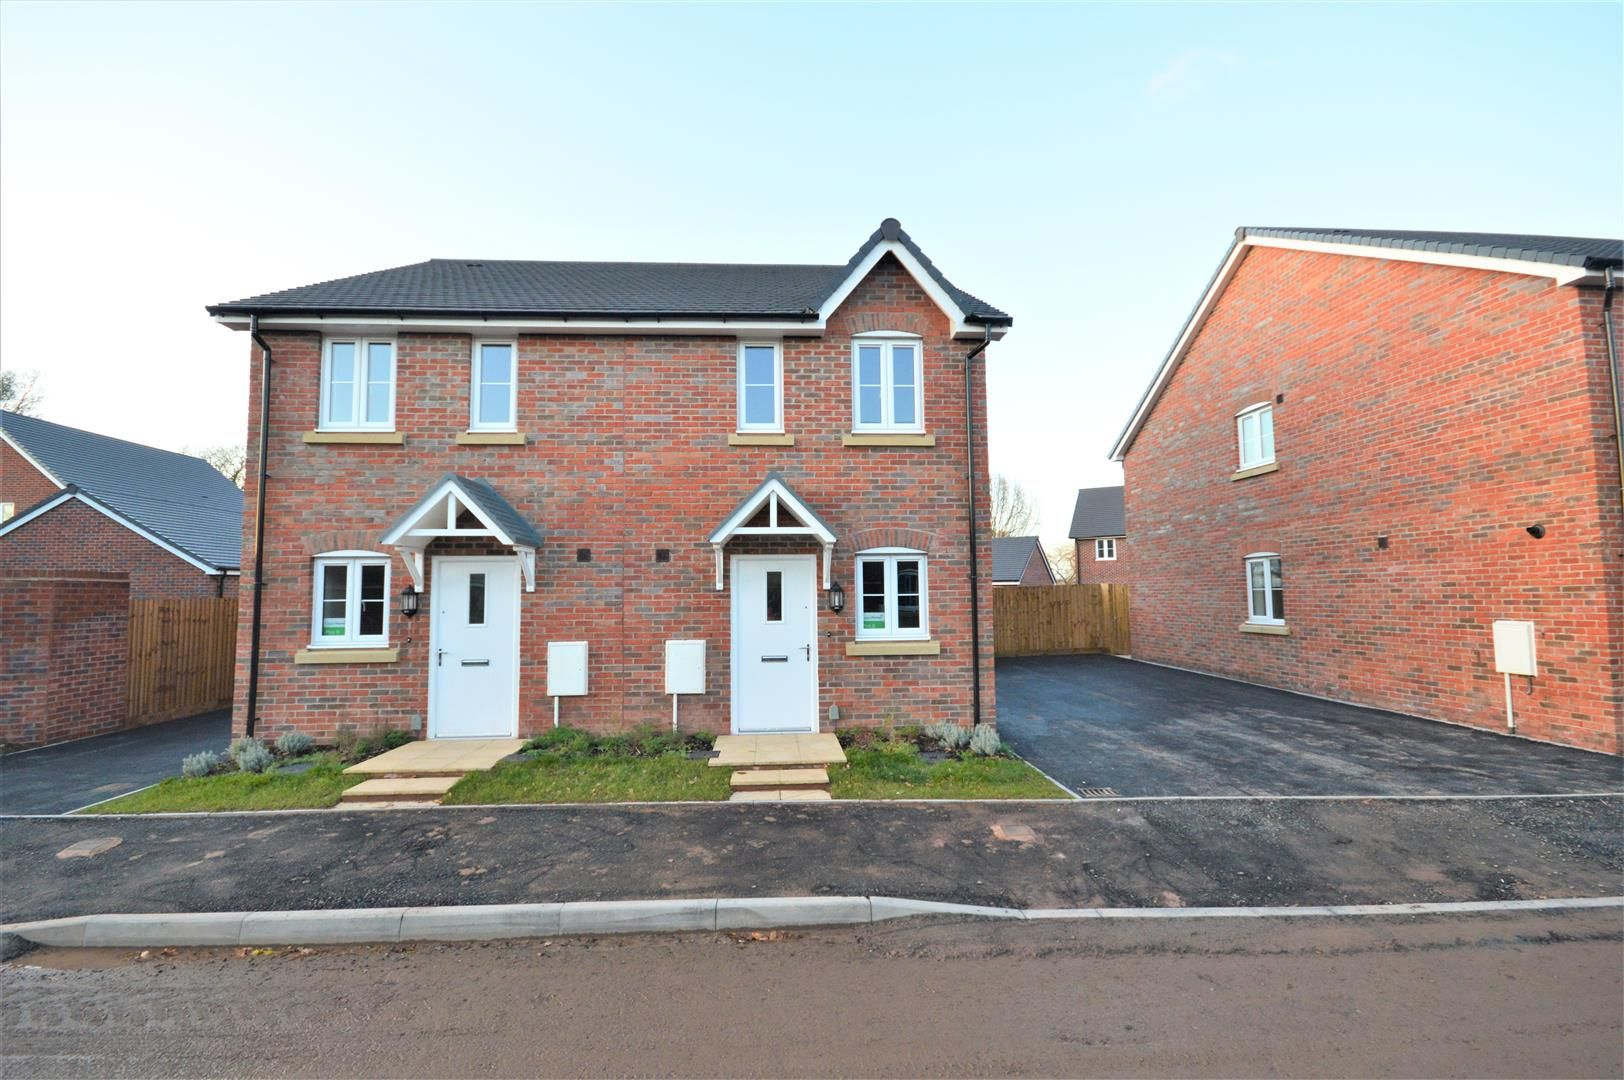 2 bed semi-detached for sale in Kingstone  - Property Image 1